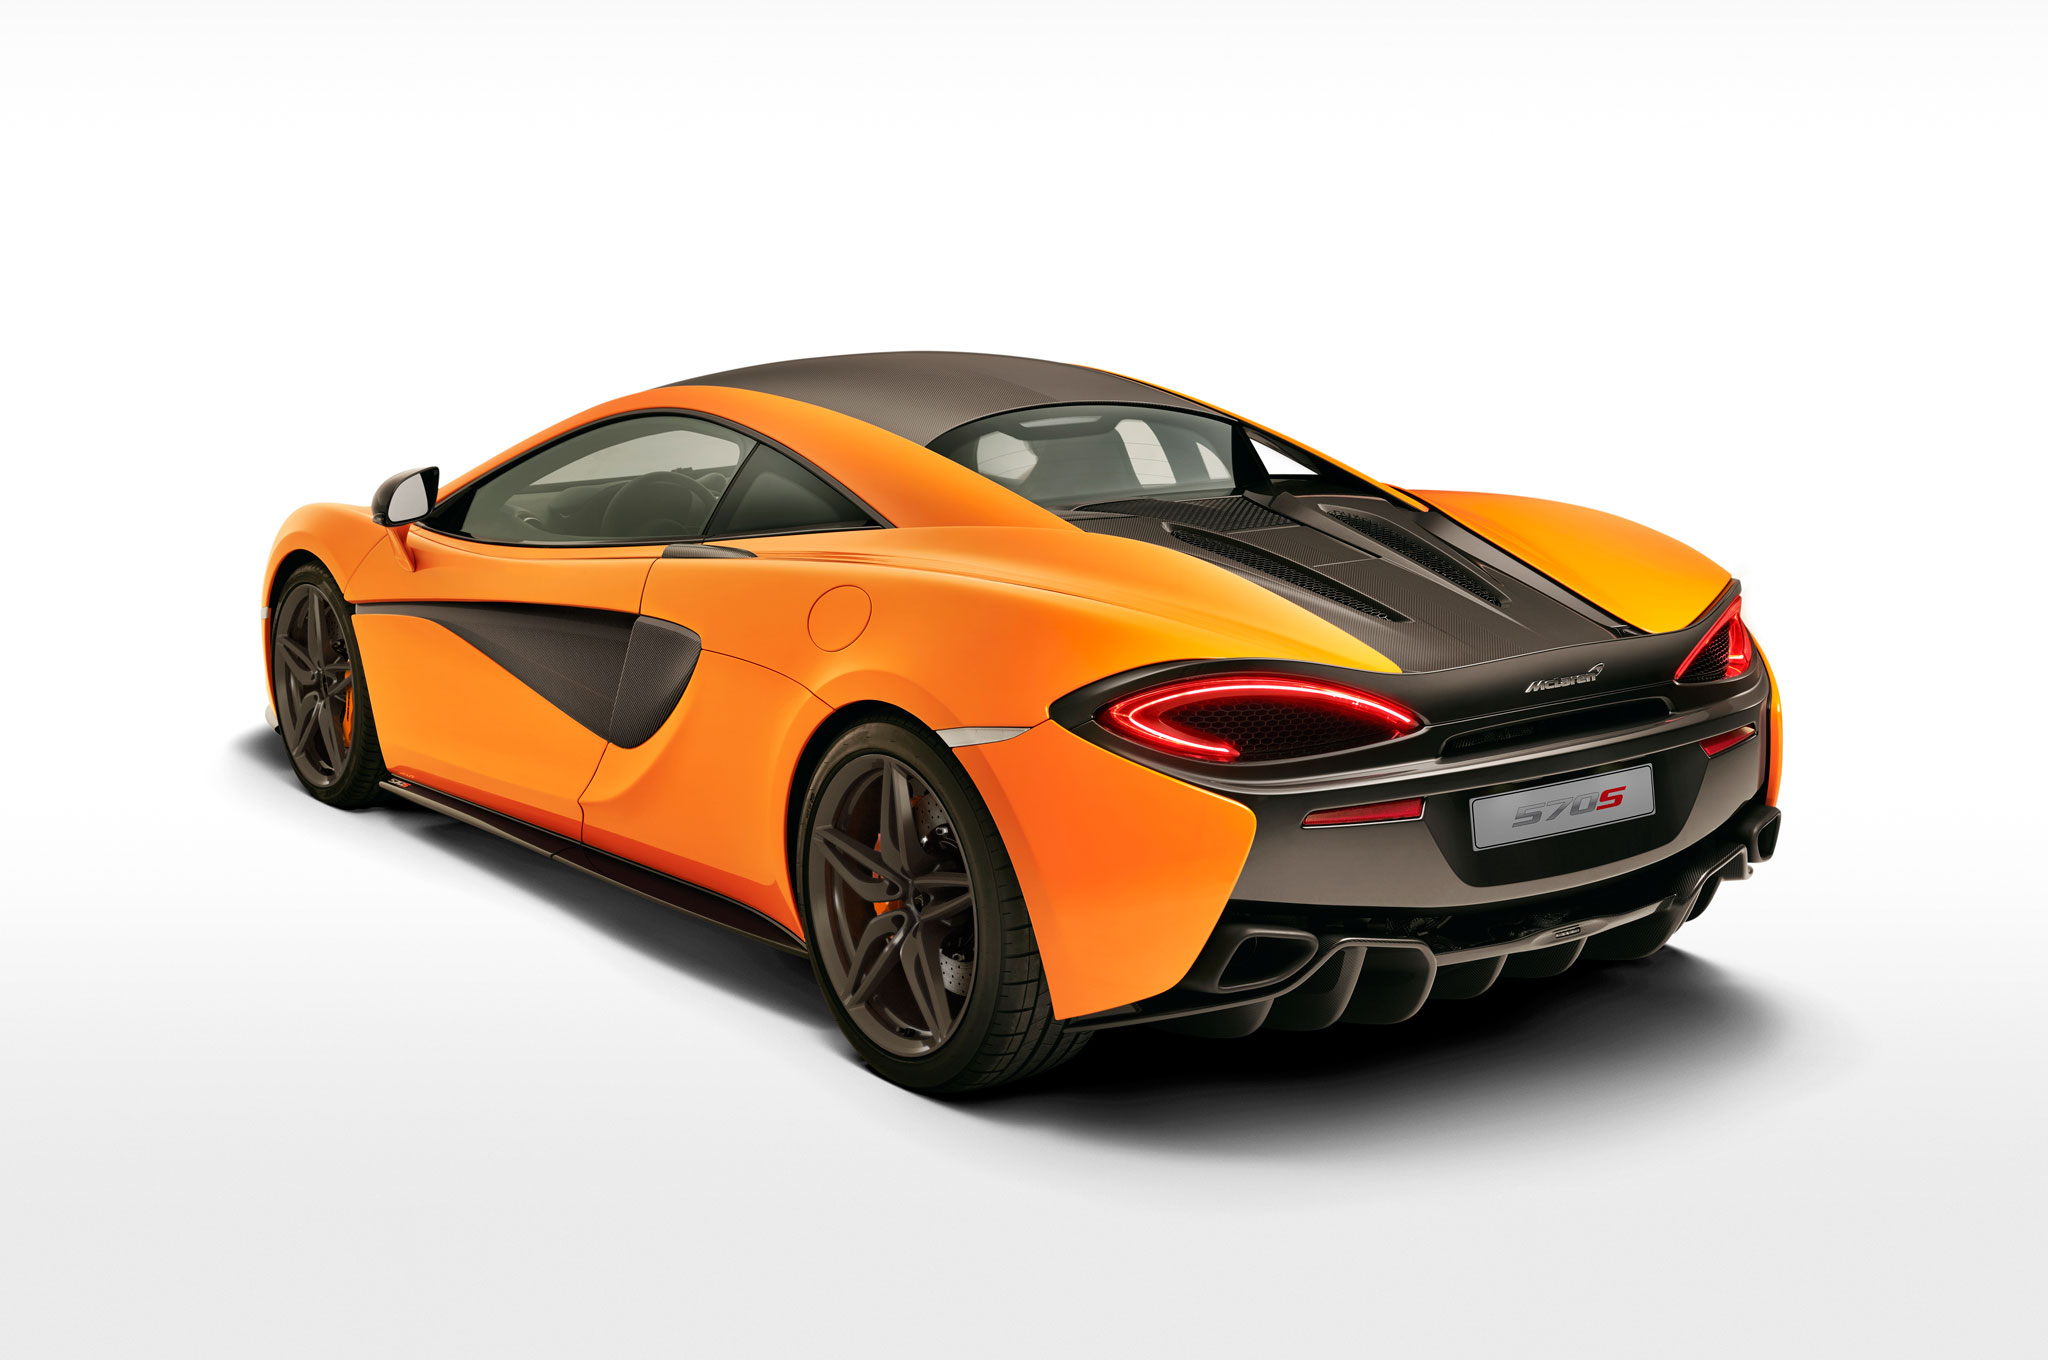 2016-Mclaren-570S-rear-three-quarter